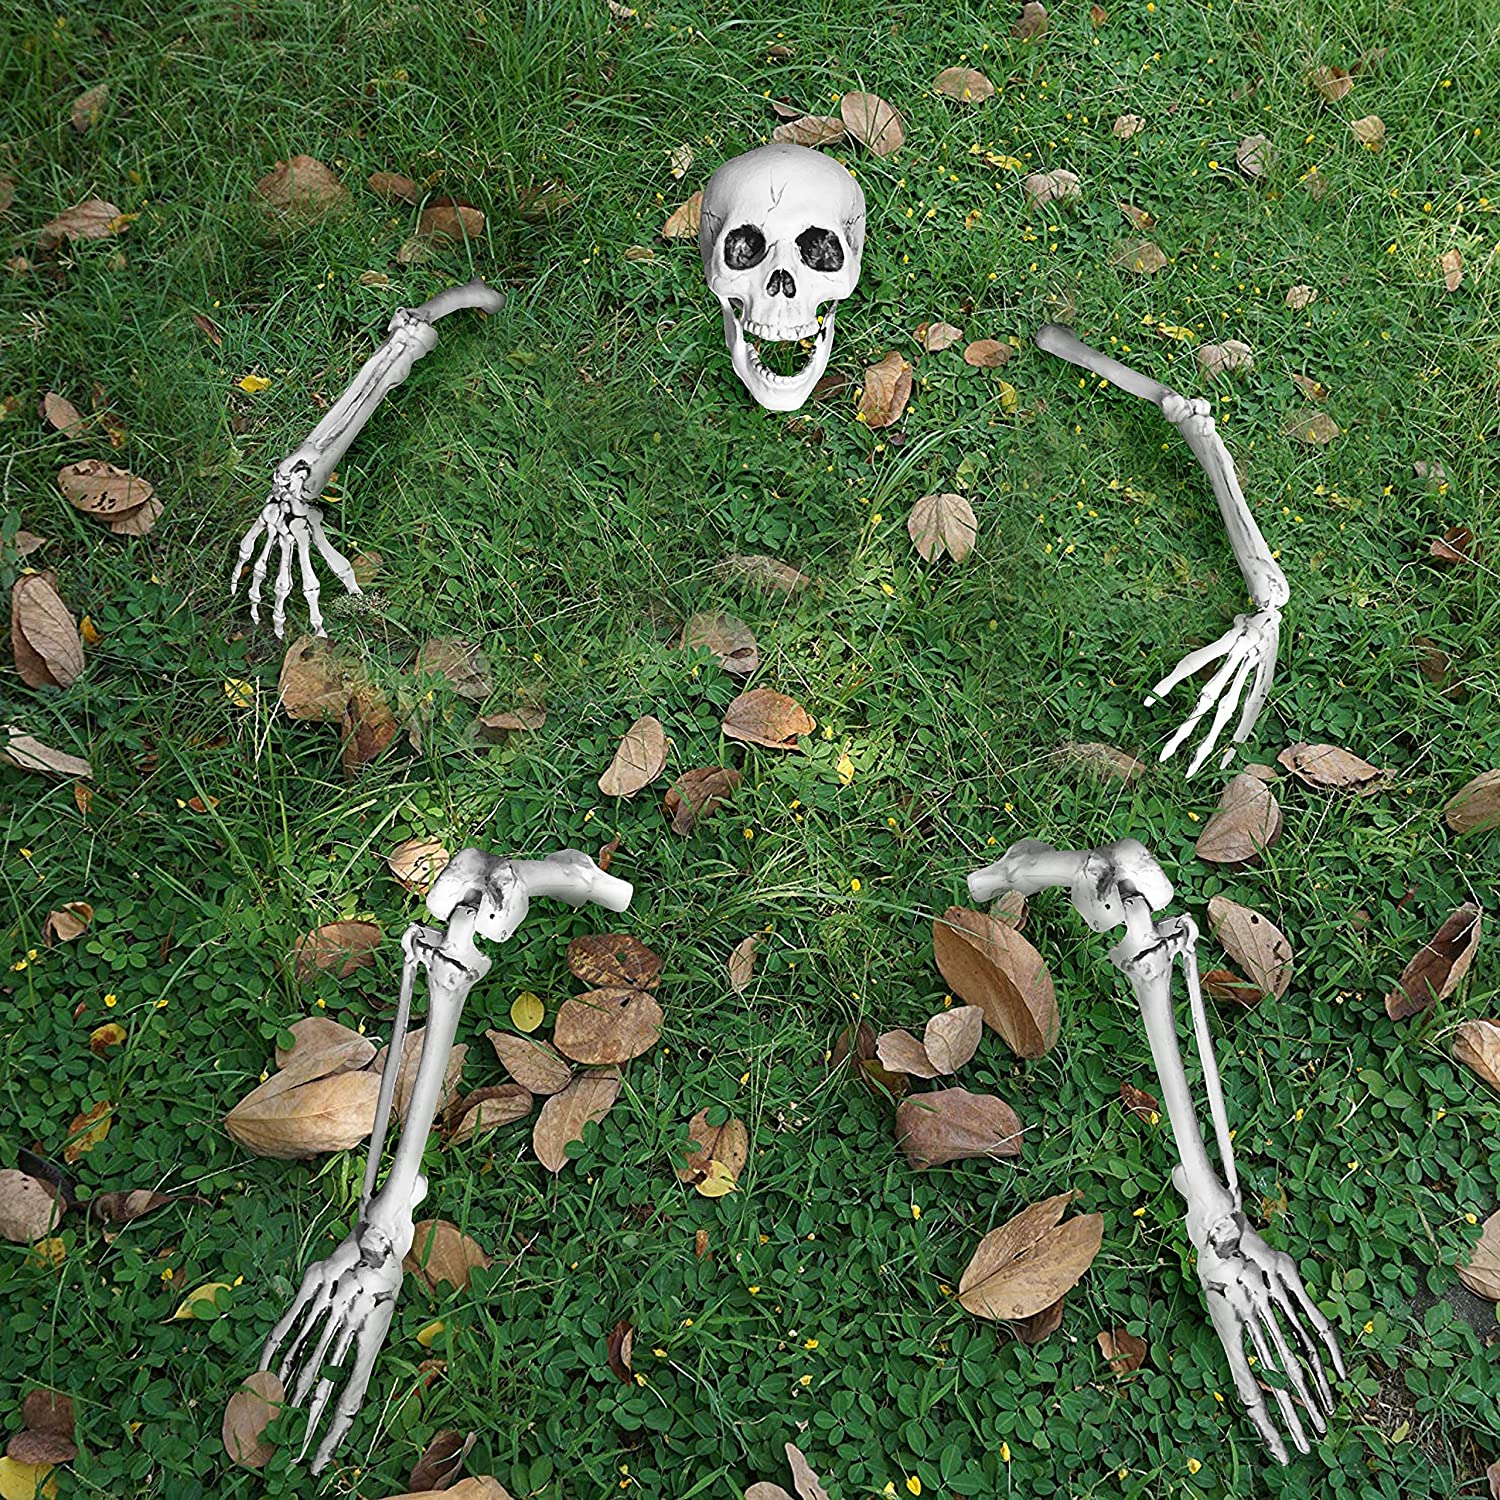 JOYIN Life Size Groundbreaker Skeleton Stakes for Halloween Yard Decorations